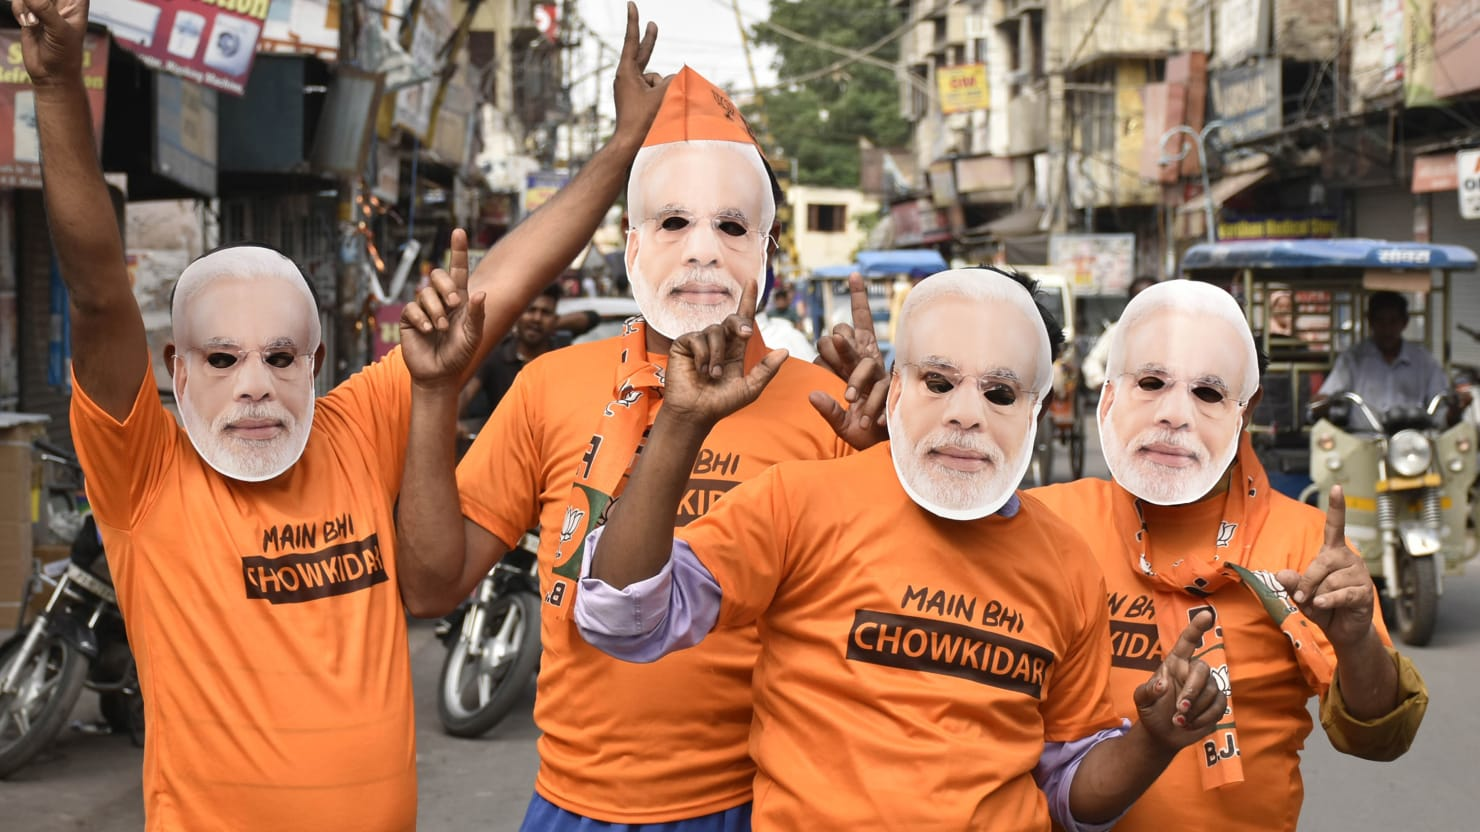 Modi's India Landslide Should Scare the Sh*t Out of the Rest of Us